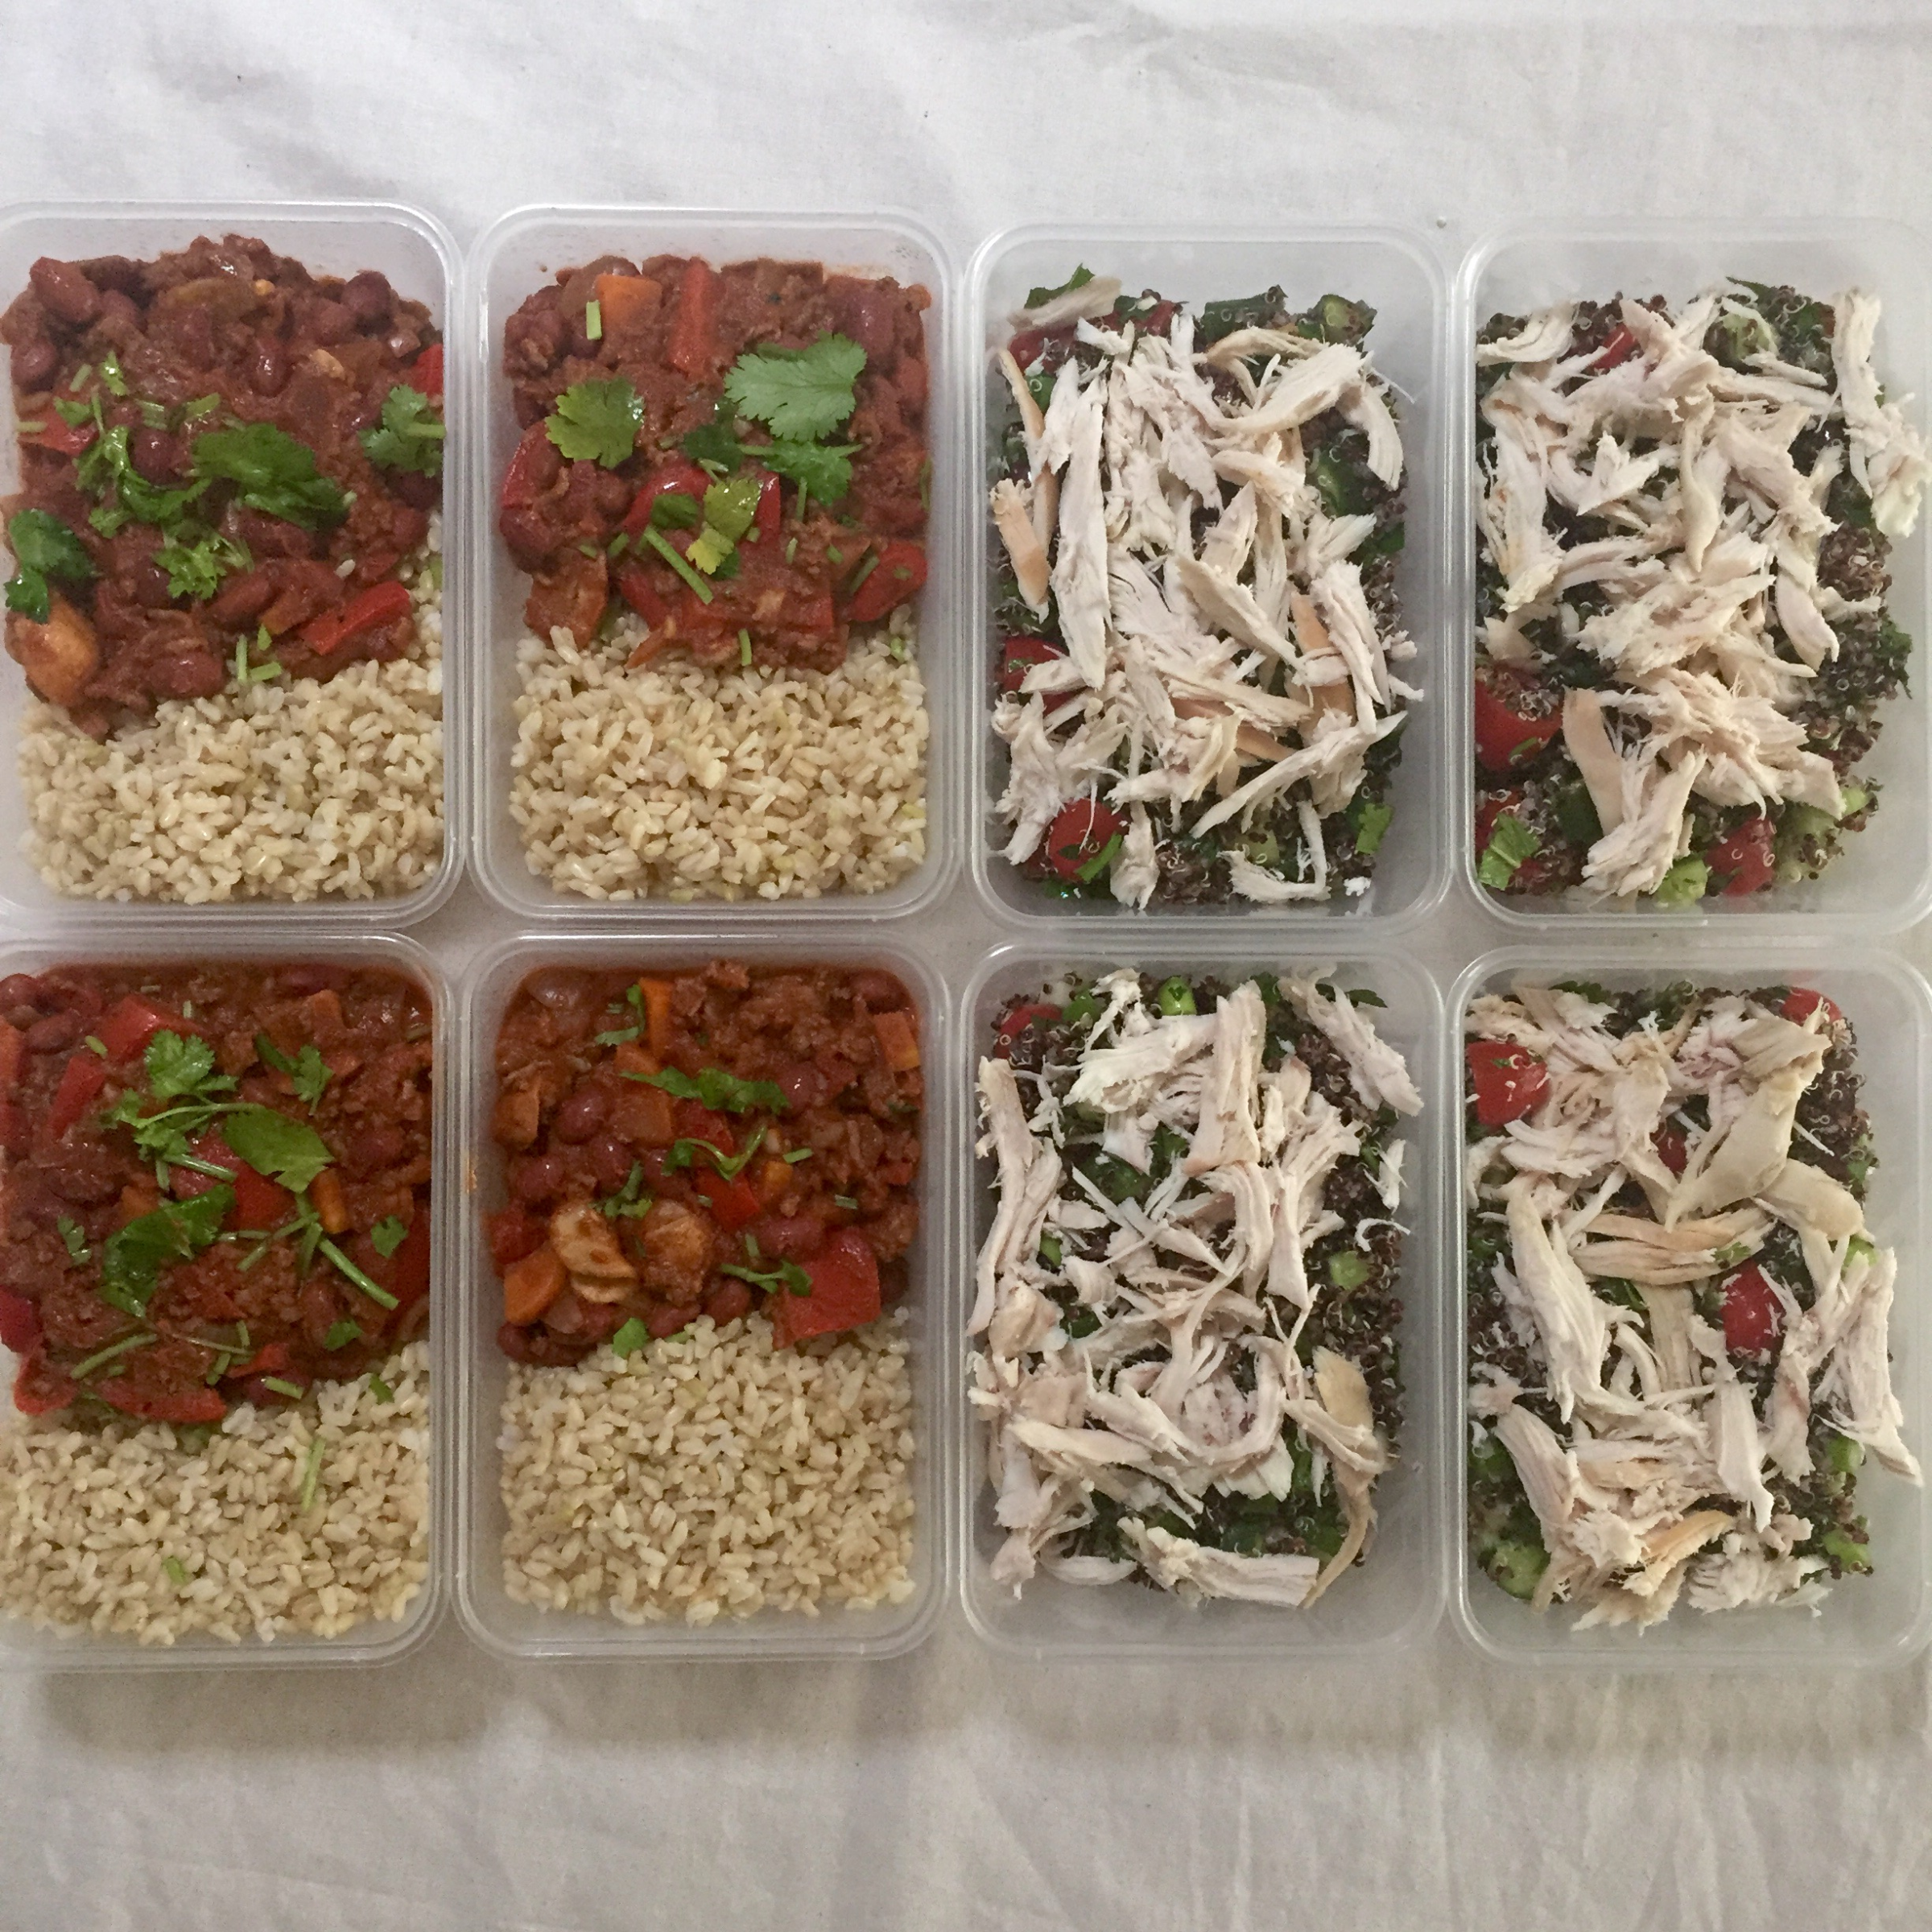 Use leftovers to make quick and healthy lunches and dinners (on the left), or make a hearty salad with a grain, veggies and a protein source (on the right) that will hold up well in the fridge for a few days.